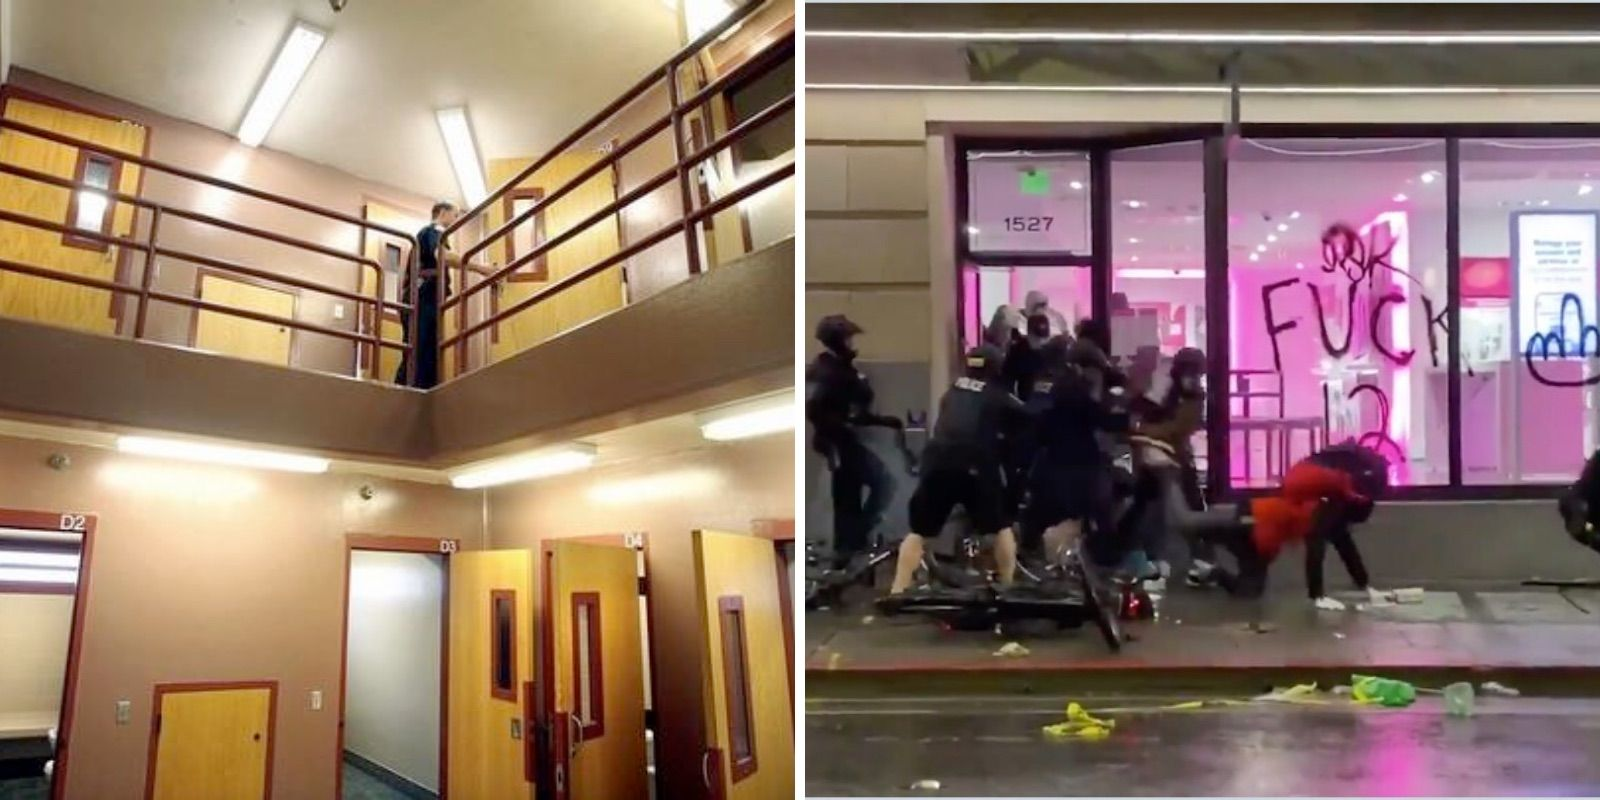 BREAKING: Seattle plans to shutter downtown jail, juvenile detention centers after city council votes to defund police